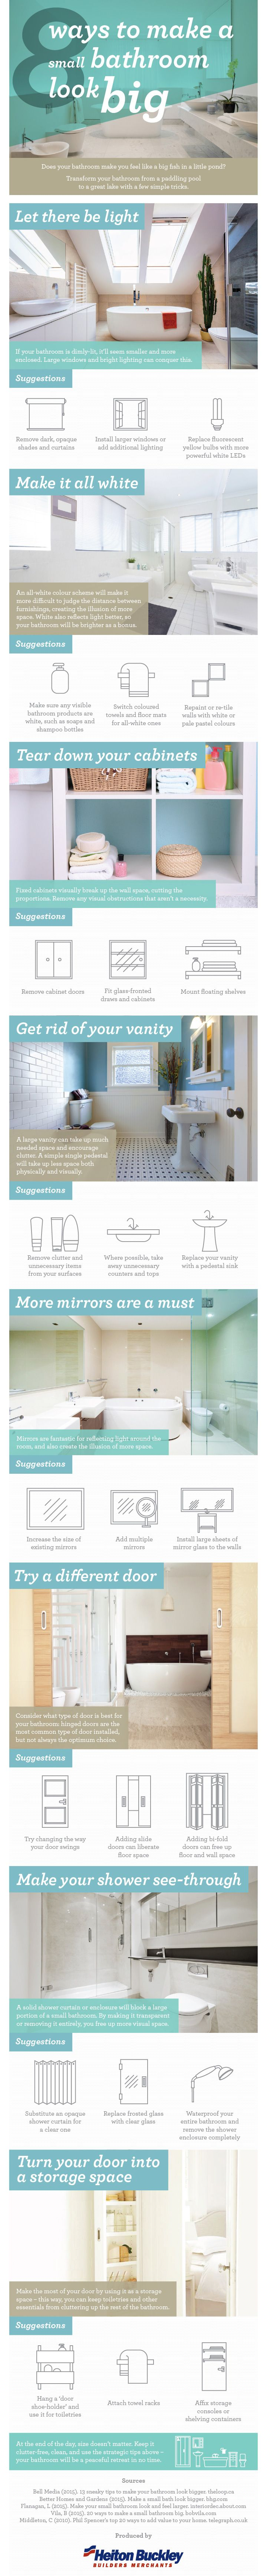 8 Ways To Make A Small Bathroom Look Big #Infographic